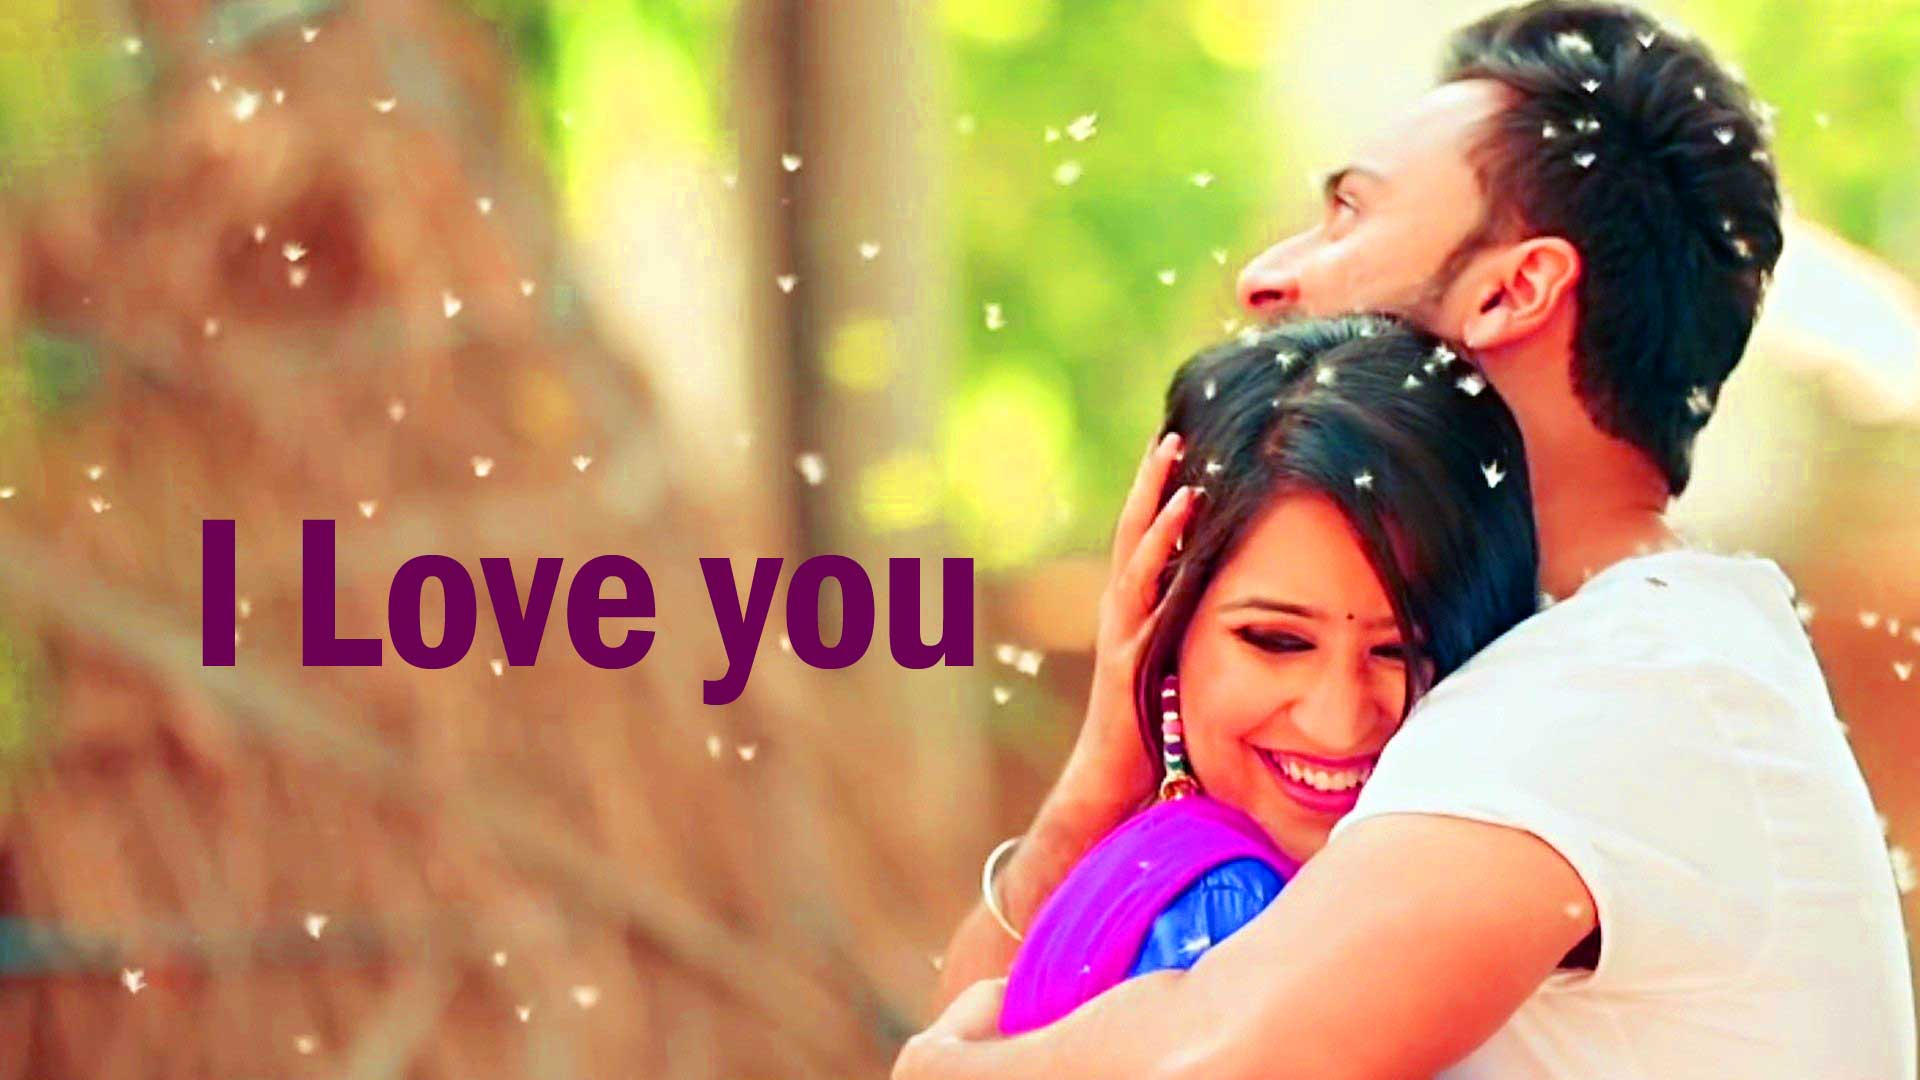 Love Couple Wallpaper Images Photo Pics Download For Whatsaap